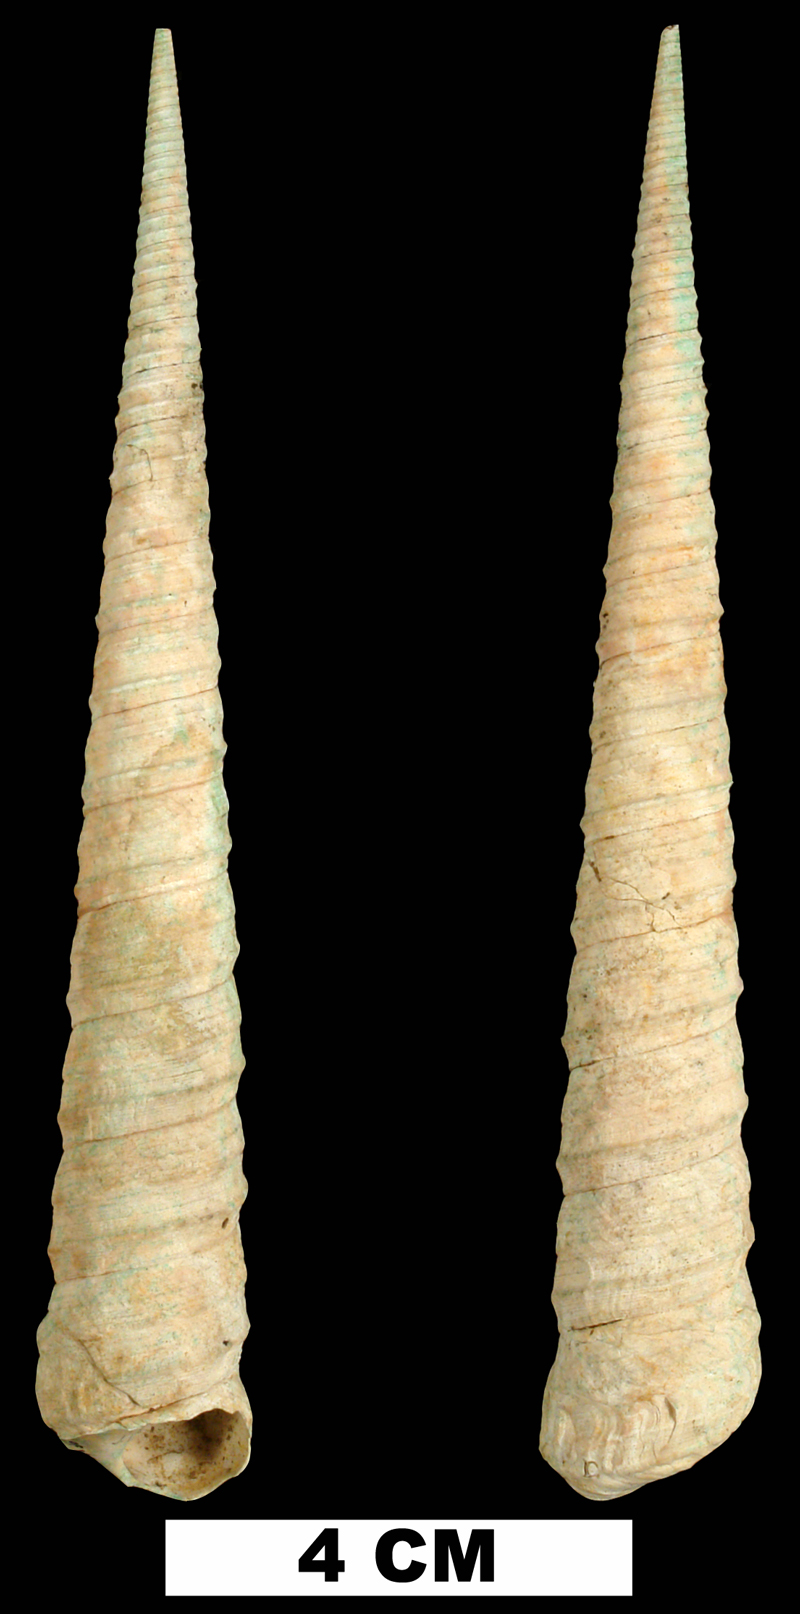 <i>Turritella alumensis</i> from the Late Pliocene Jackson Bluff Fm. of Leon County, Florida (UF 138690).